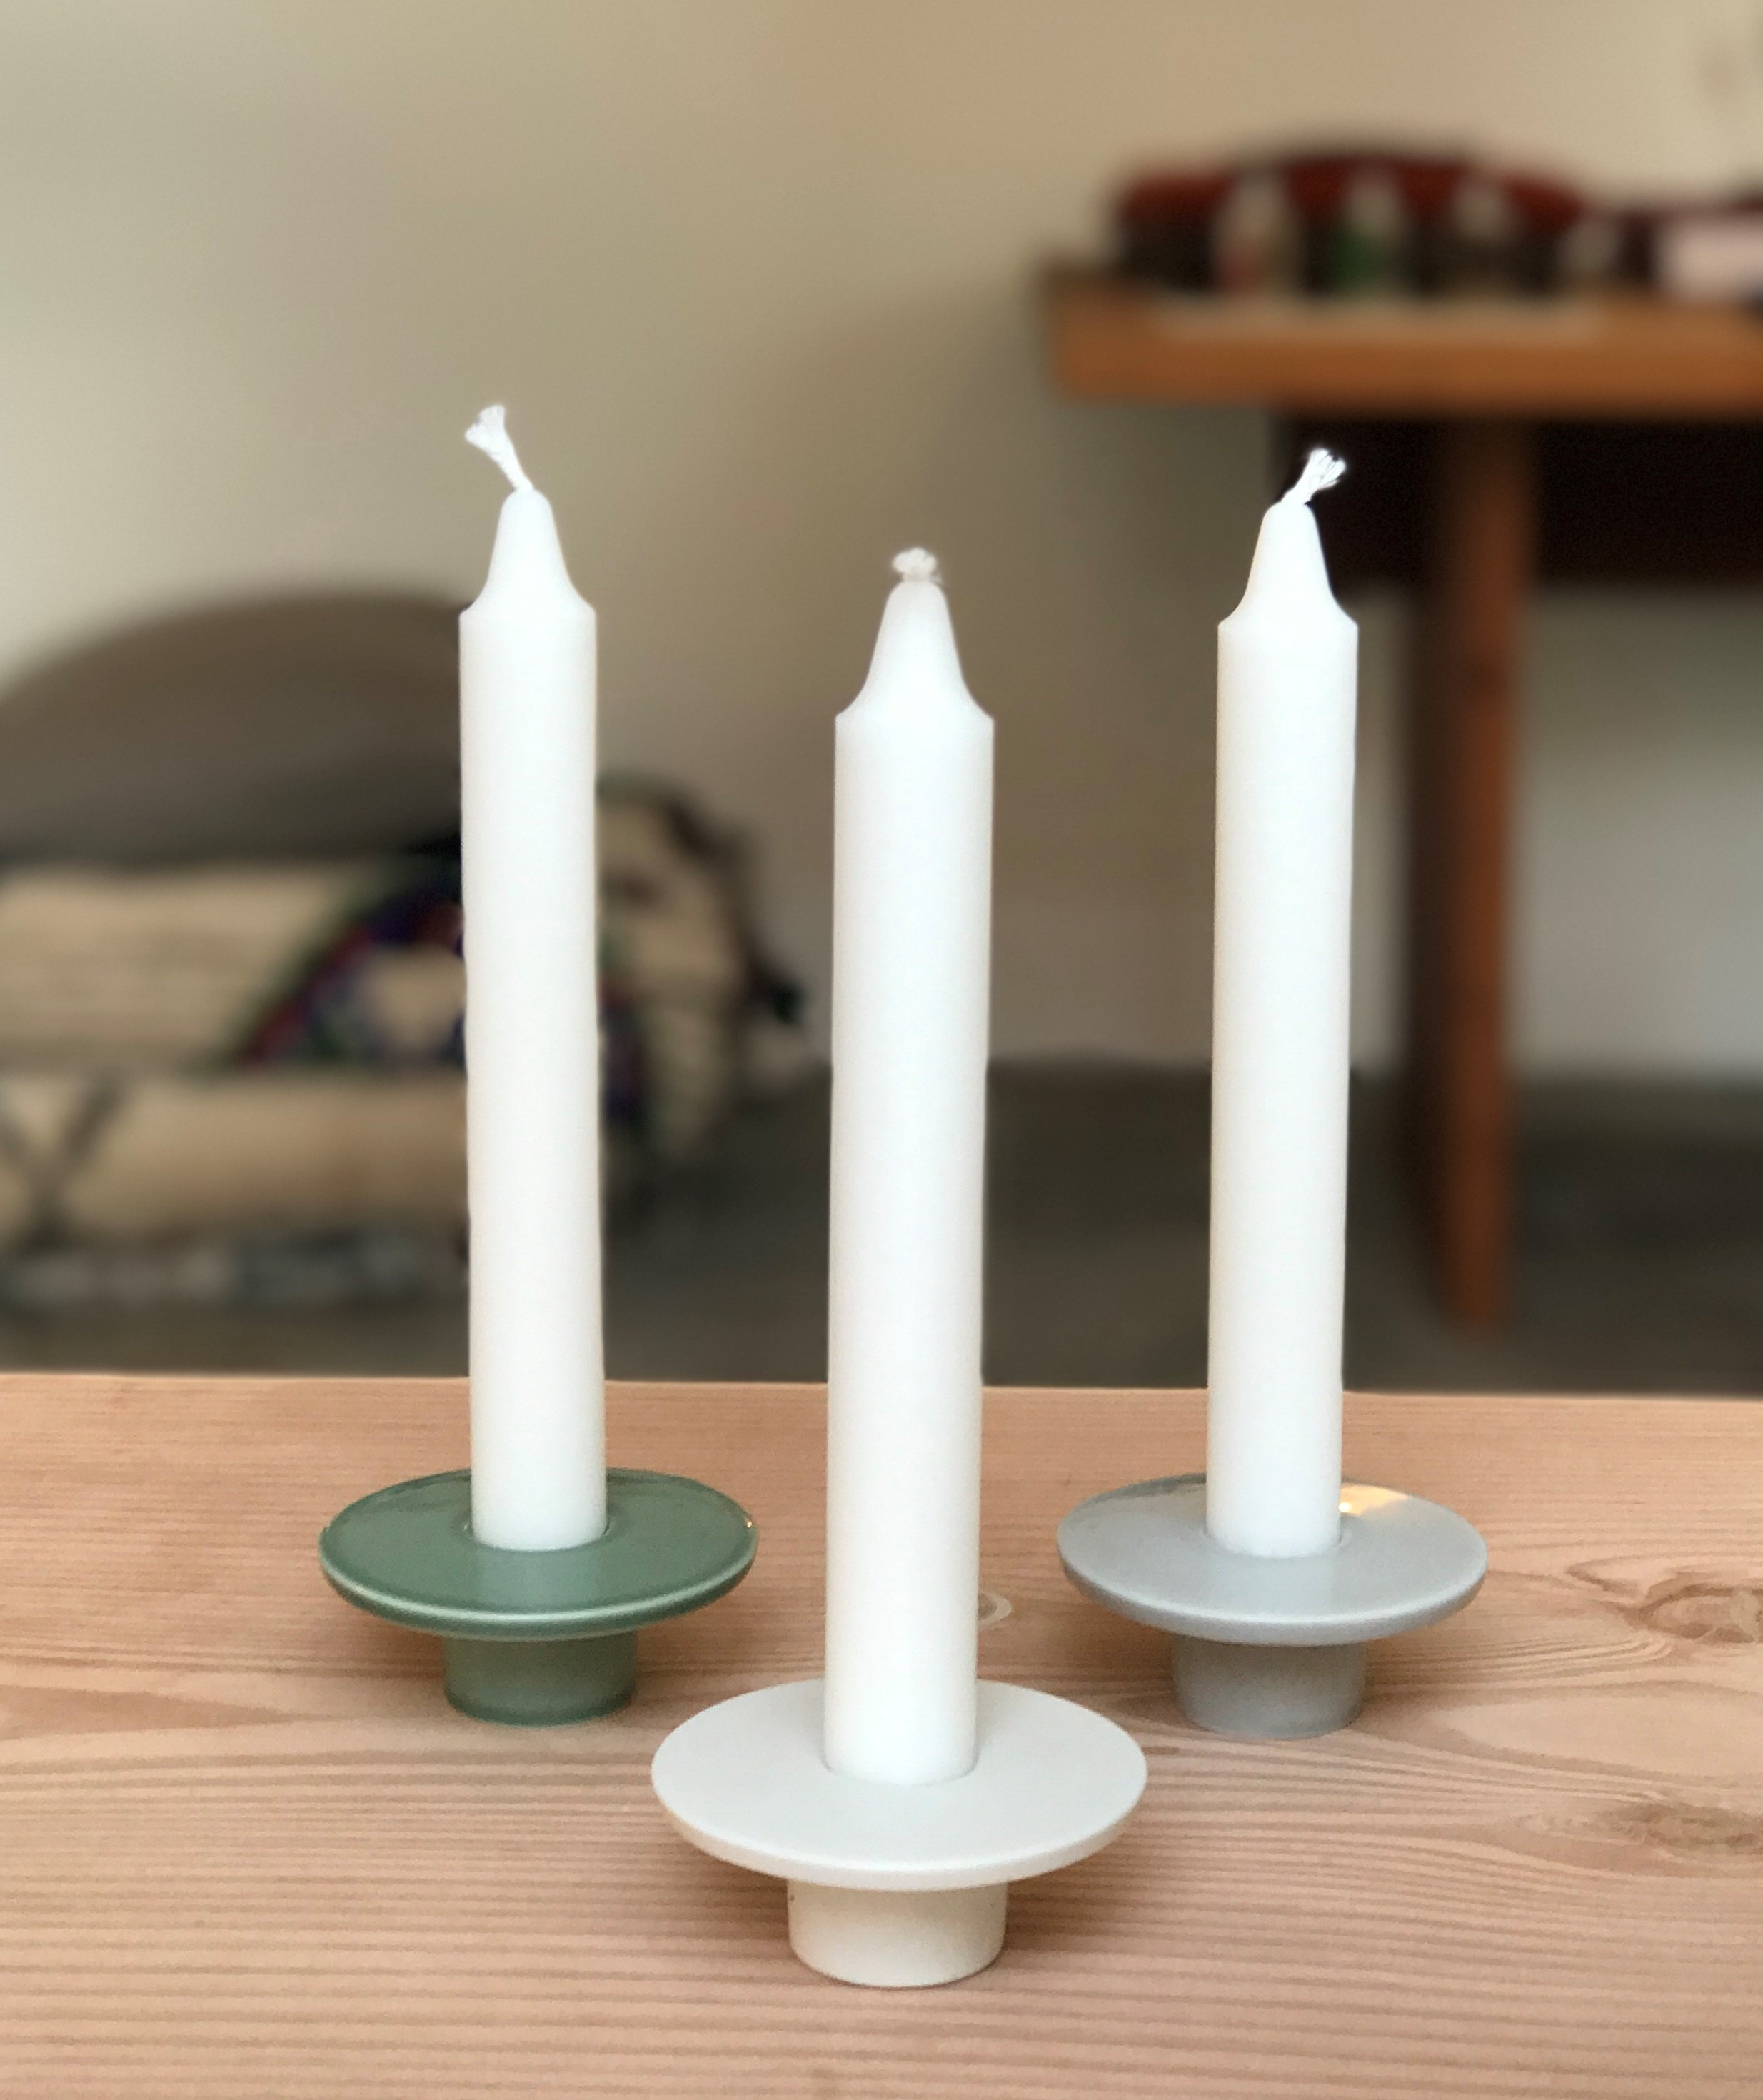 Bloom Accessoires Bloom Candle Holder Accessories